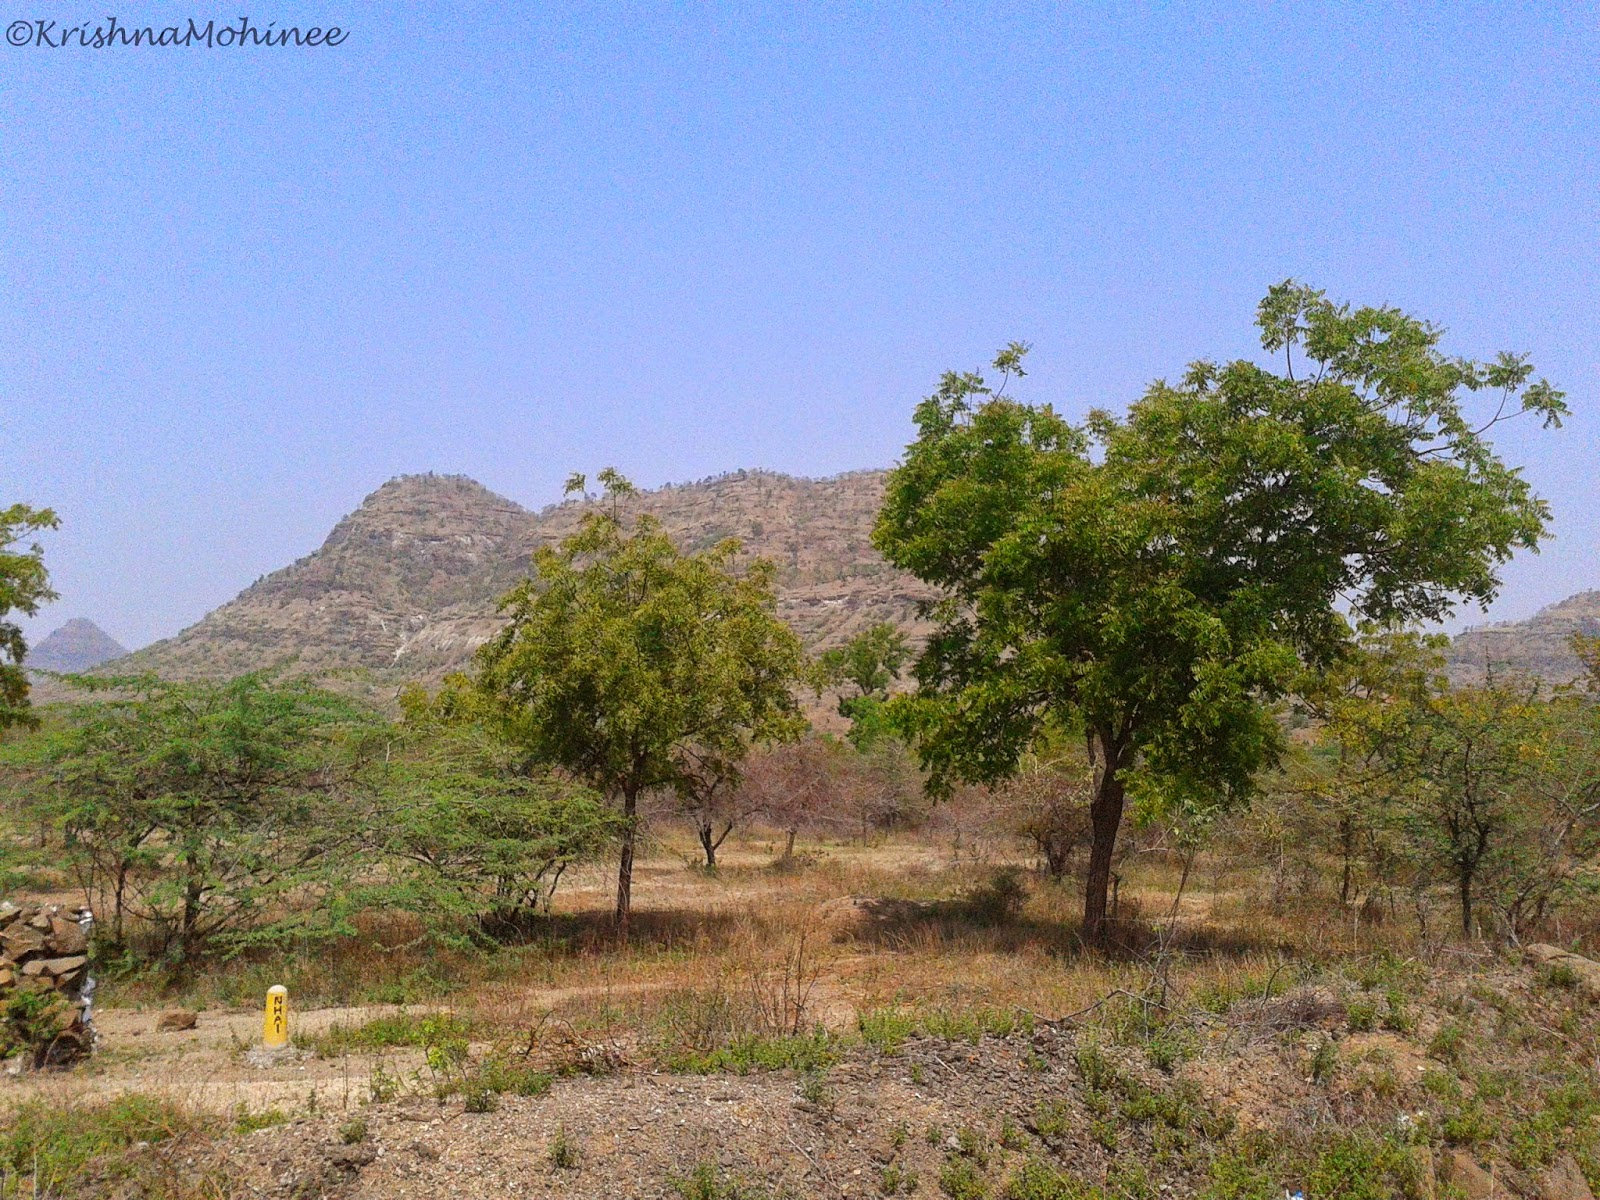 Image: Neem trees near highway